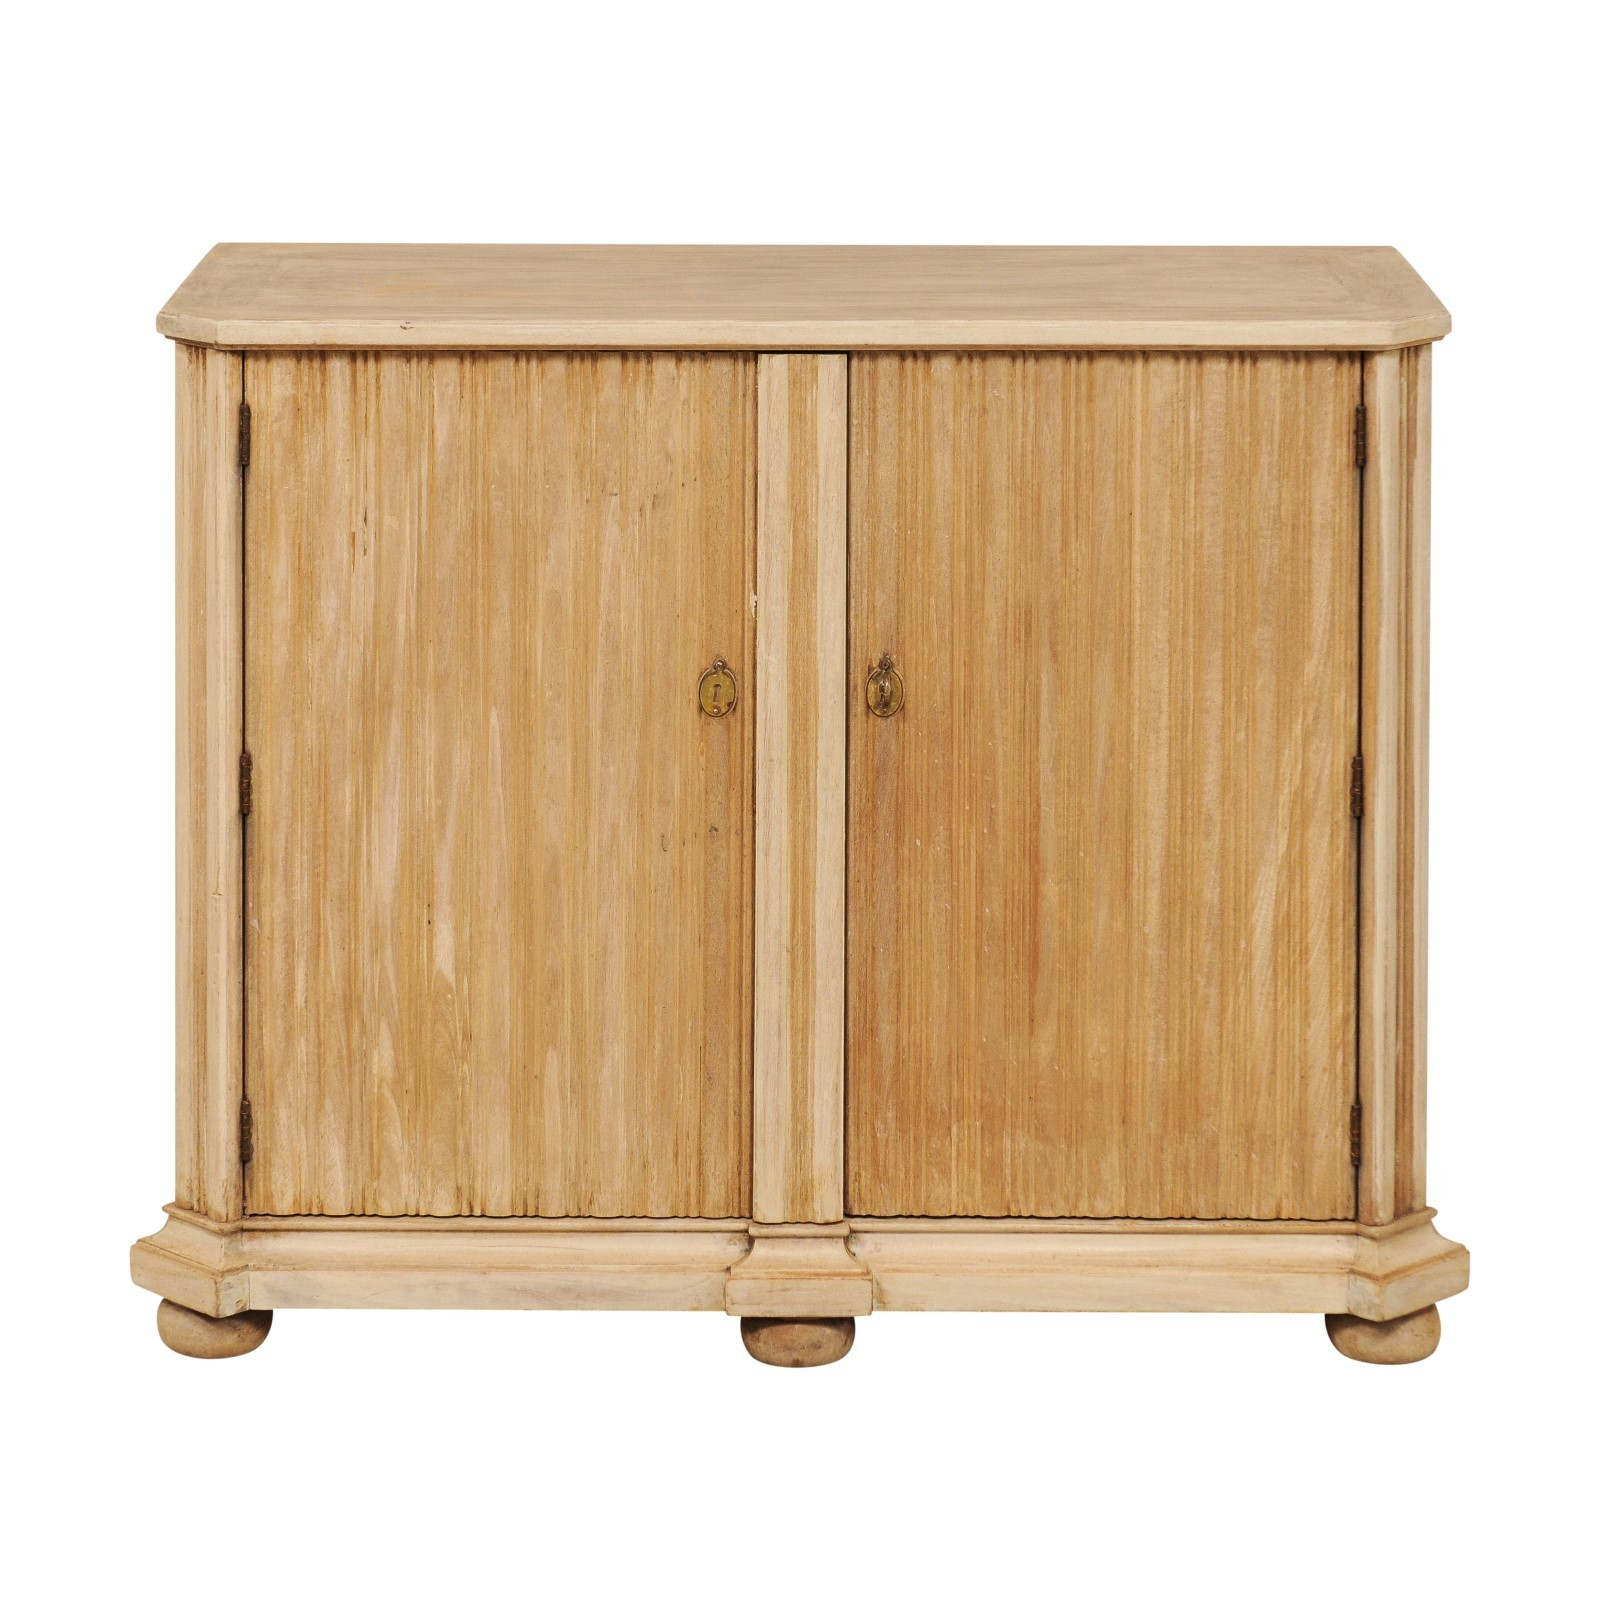 Buffet Cabinet w/ Reeded Panels